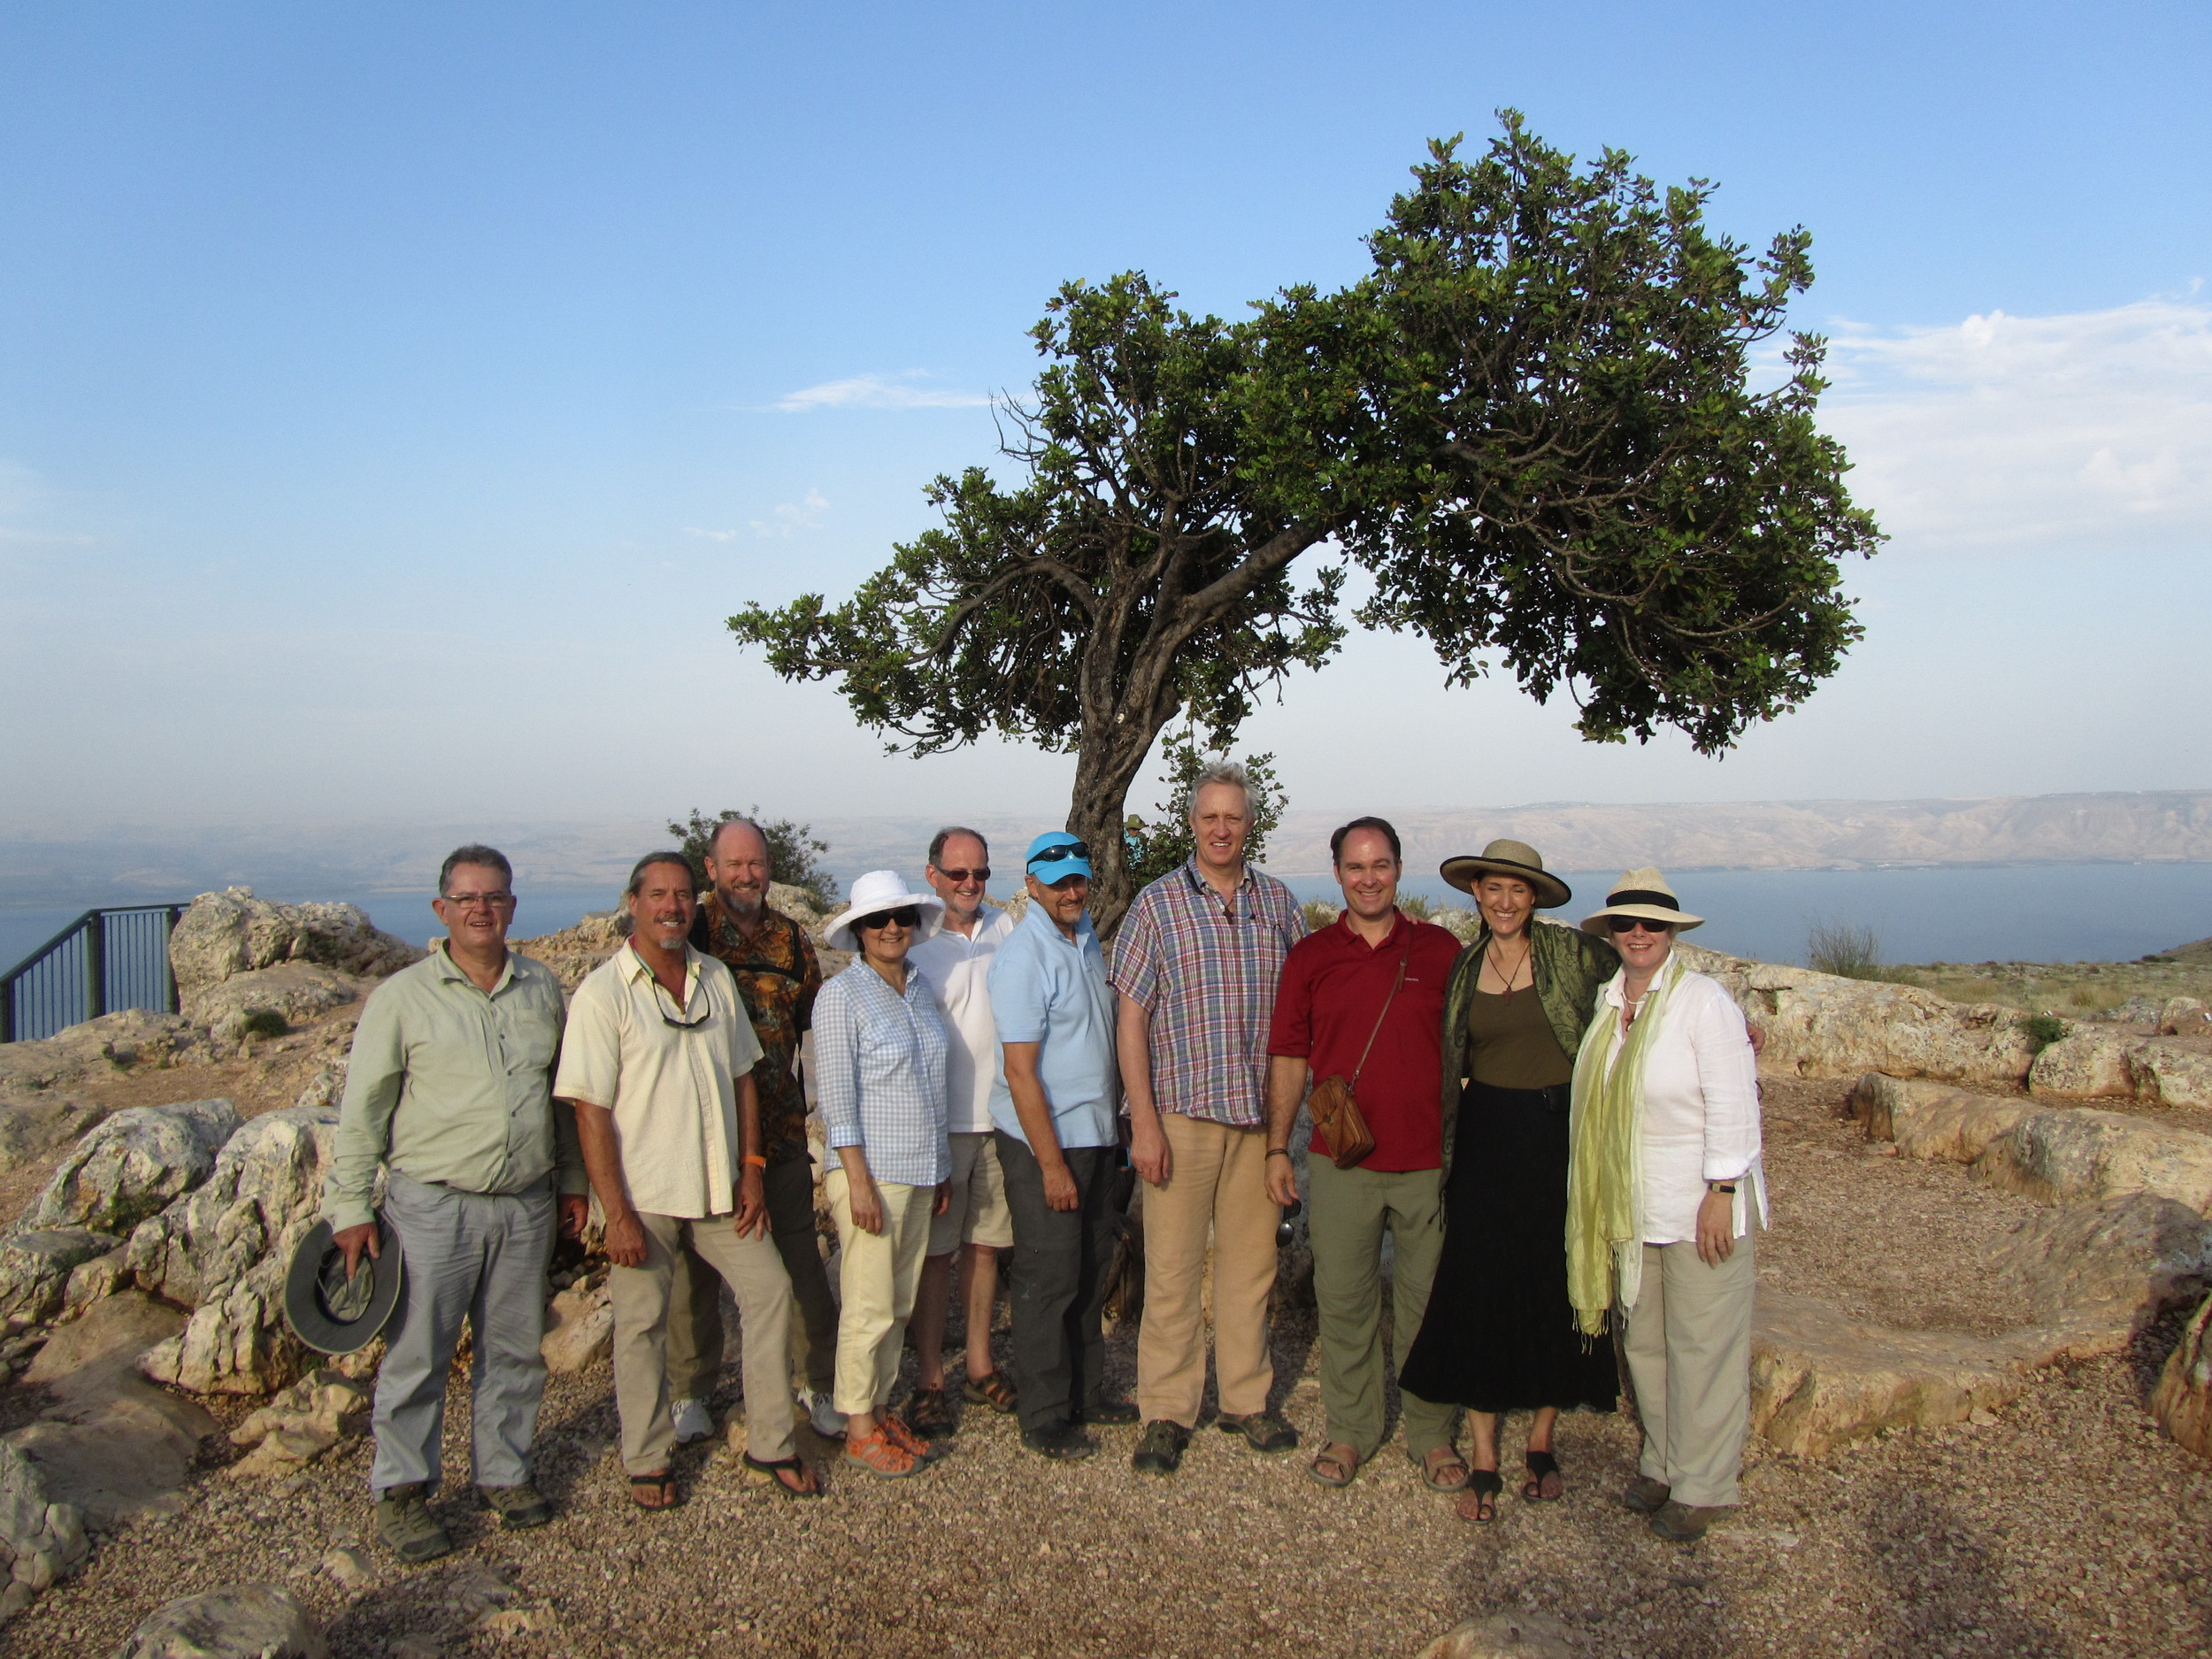 On the Cliffs of Arbel over-looking the Sea of Galilee